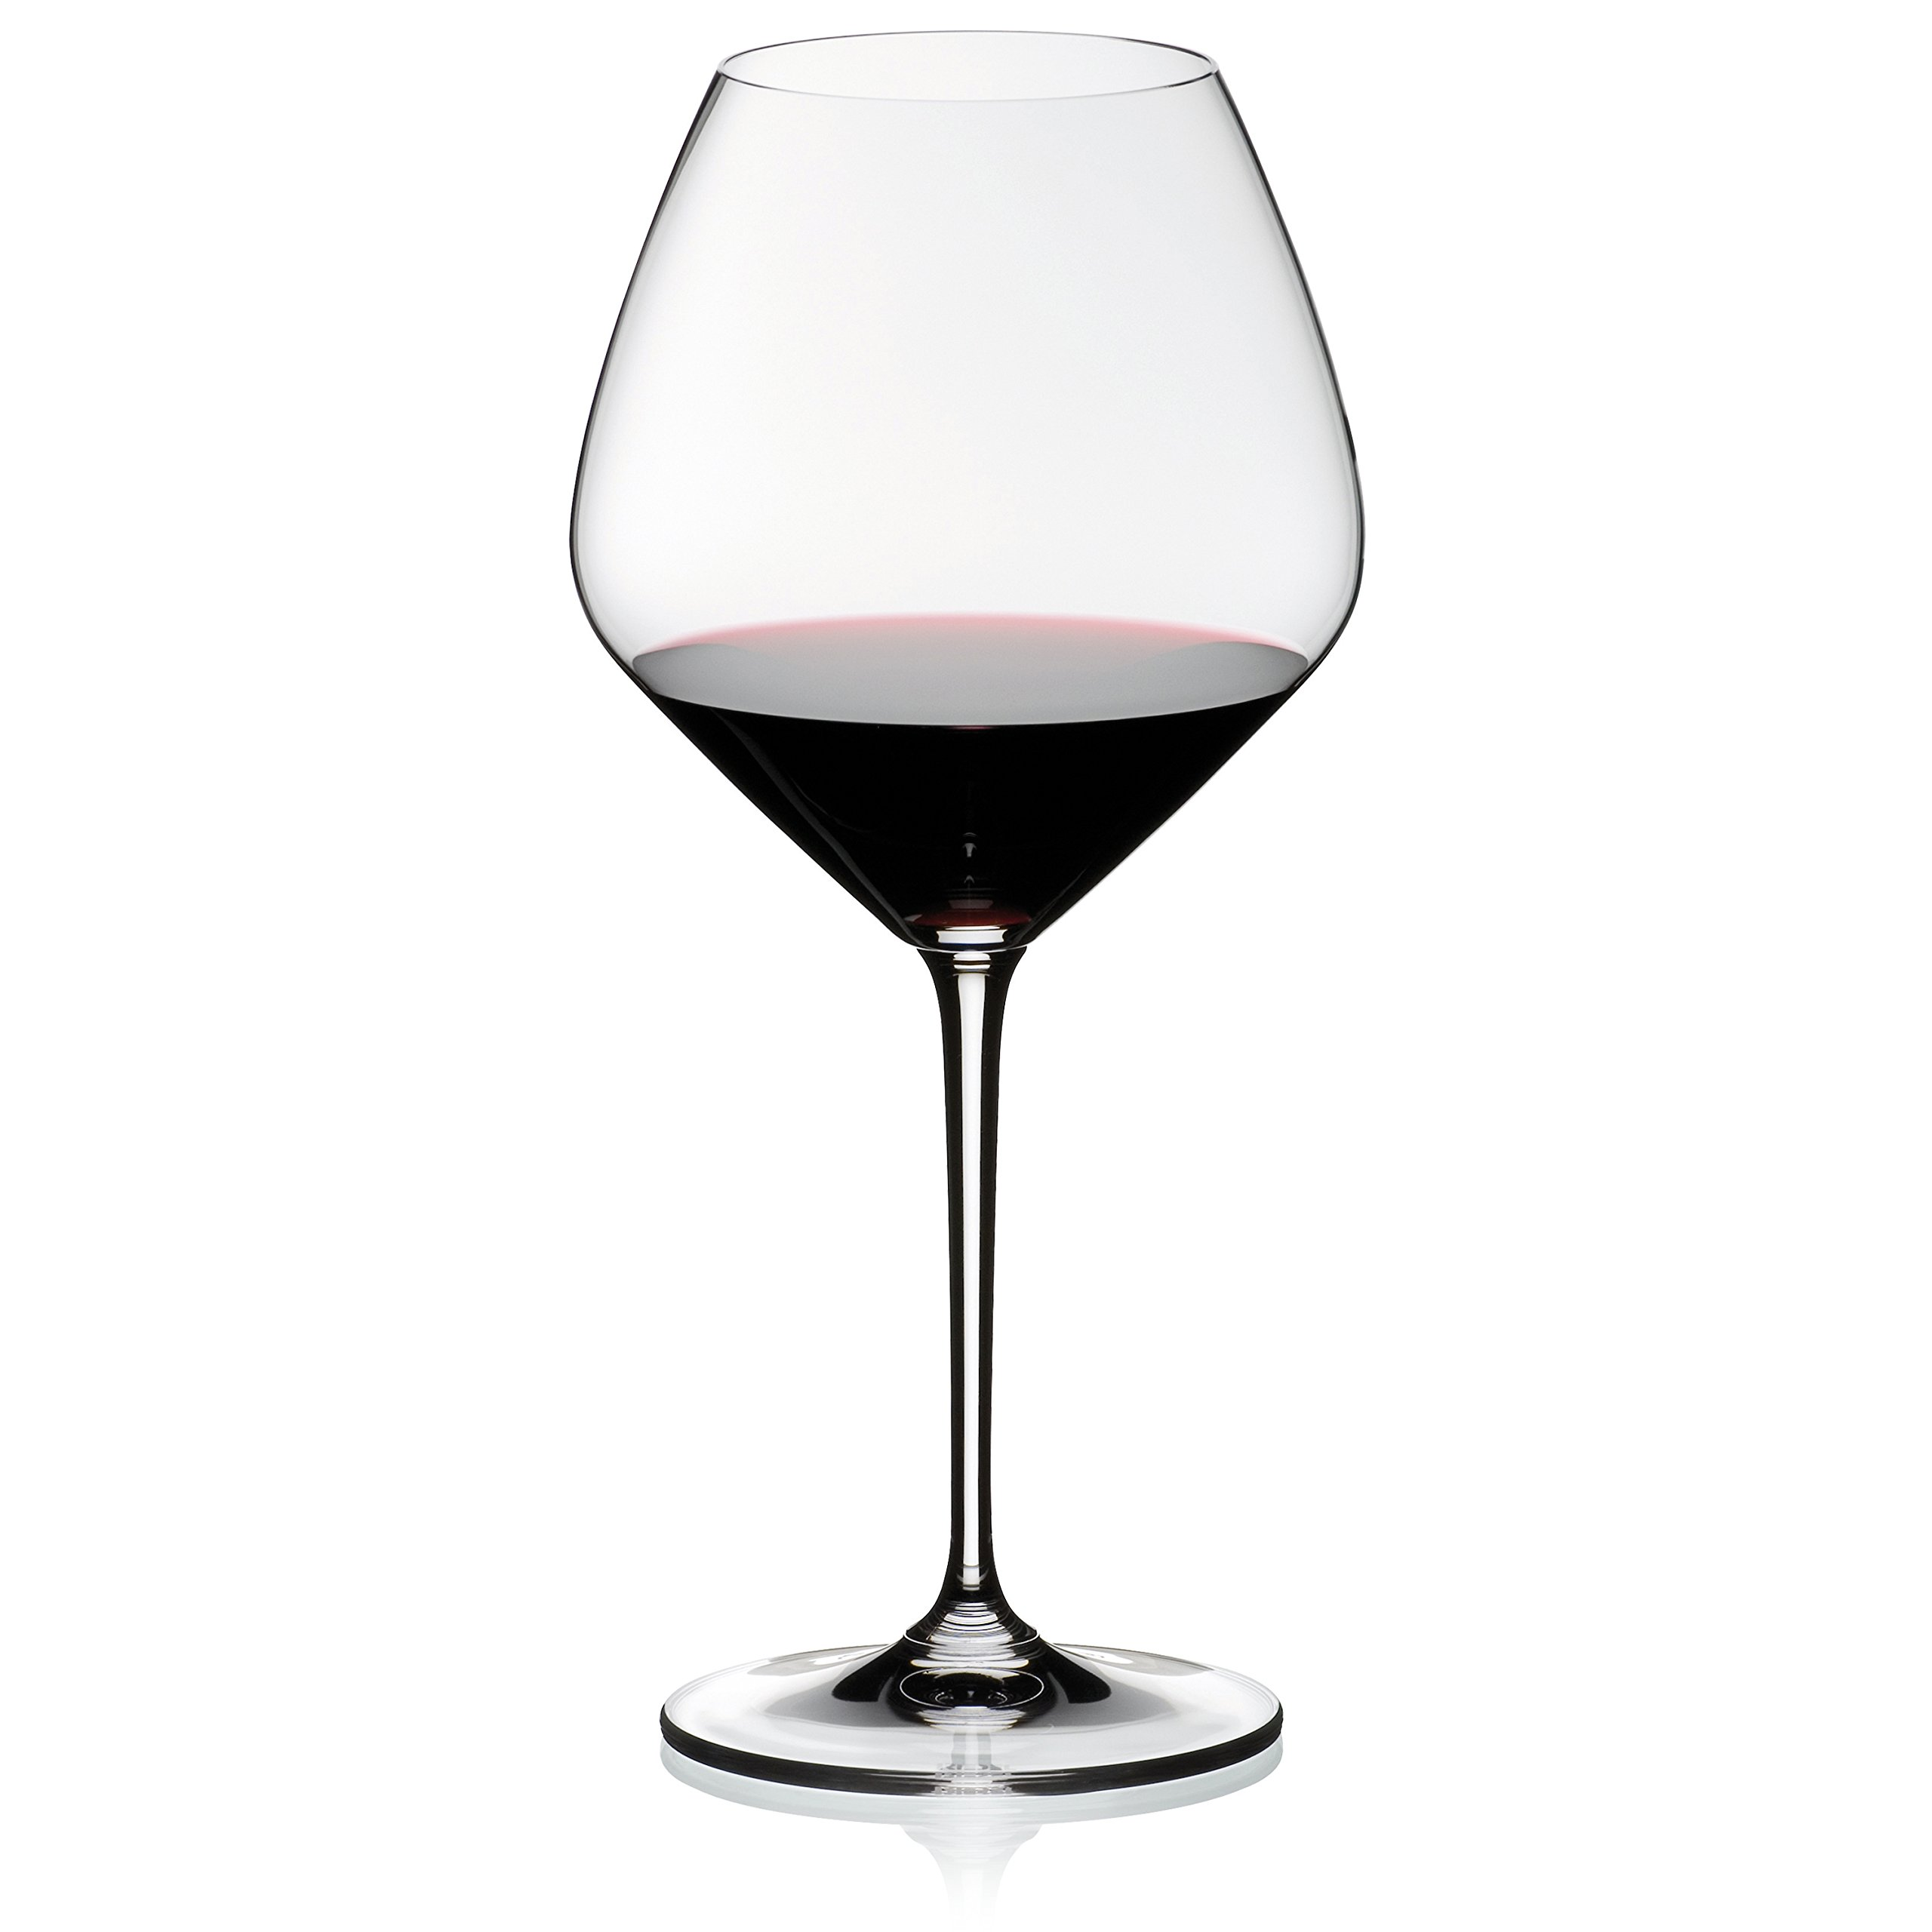 Riedel Vinum Extreme Pinot Noir Glasses, Set of 4